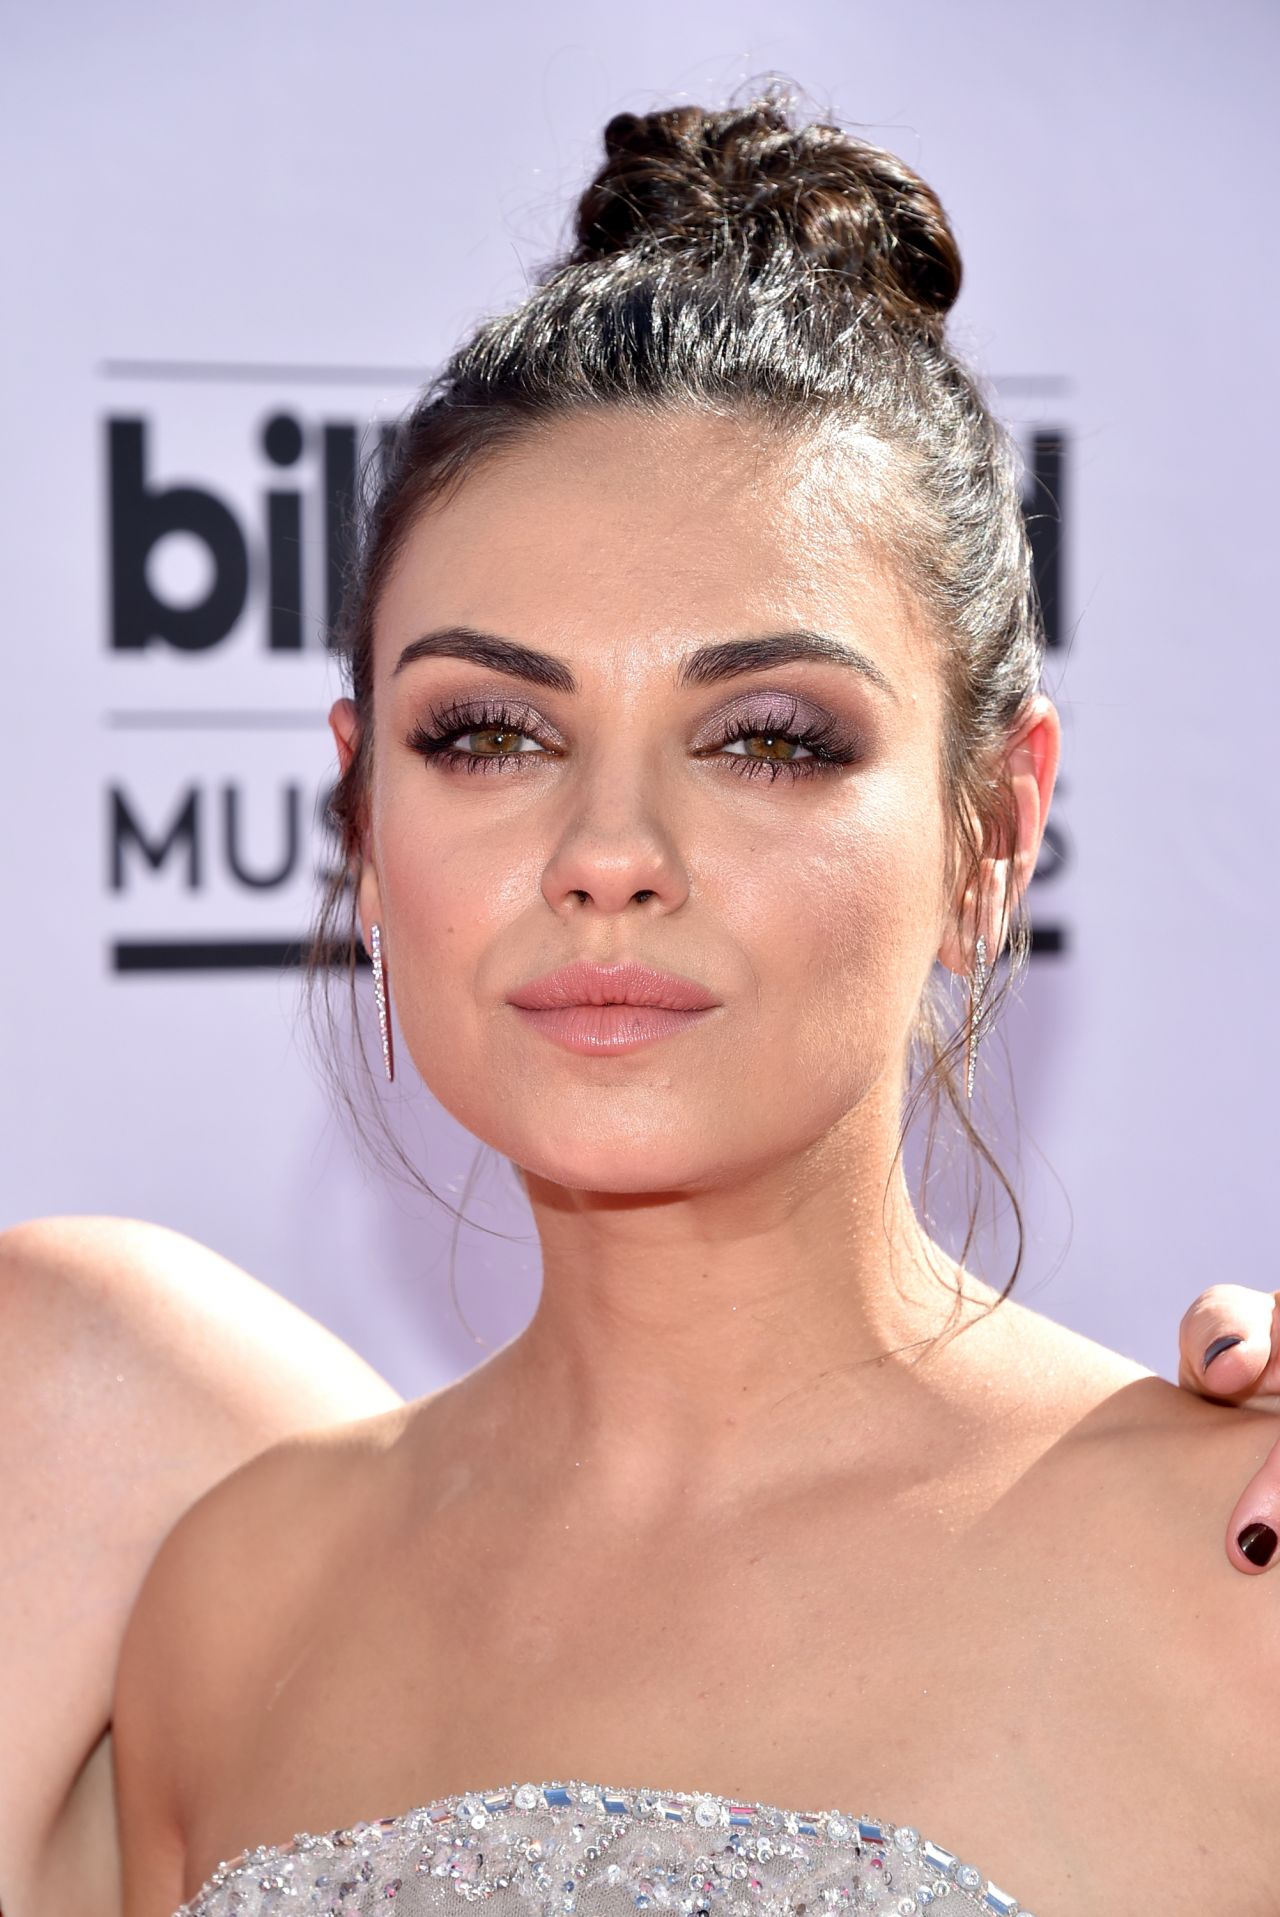 Mila Kunis – 2016 Billboard Music Awards in Las Vegas, NV Mila Kunis